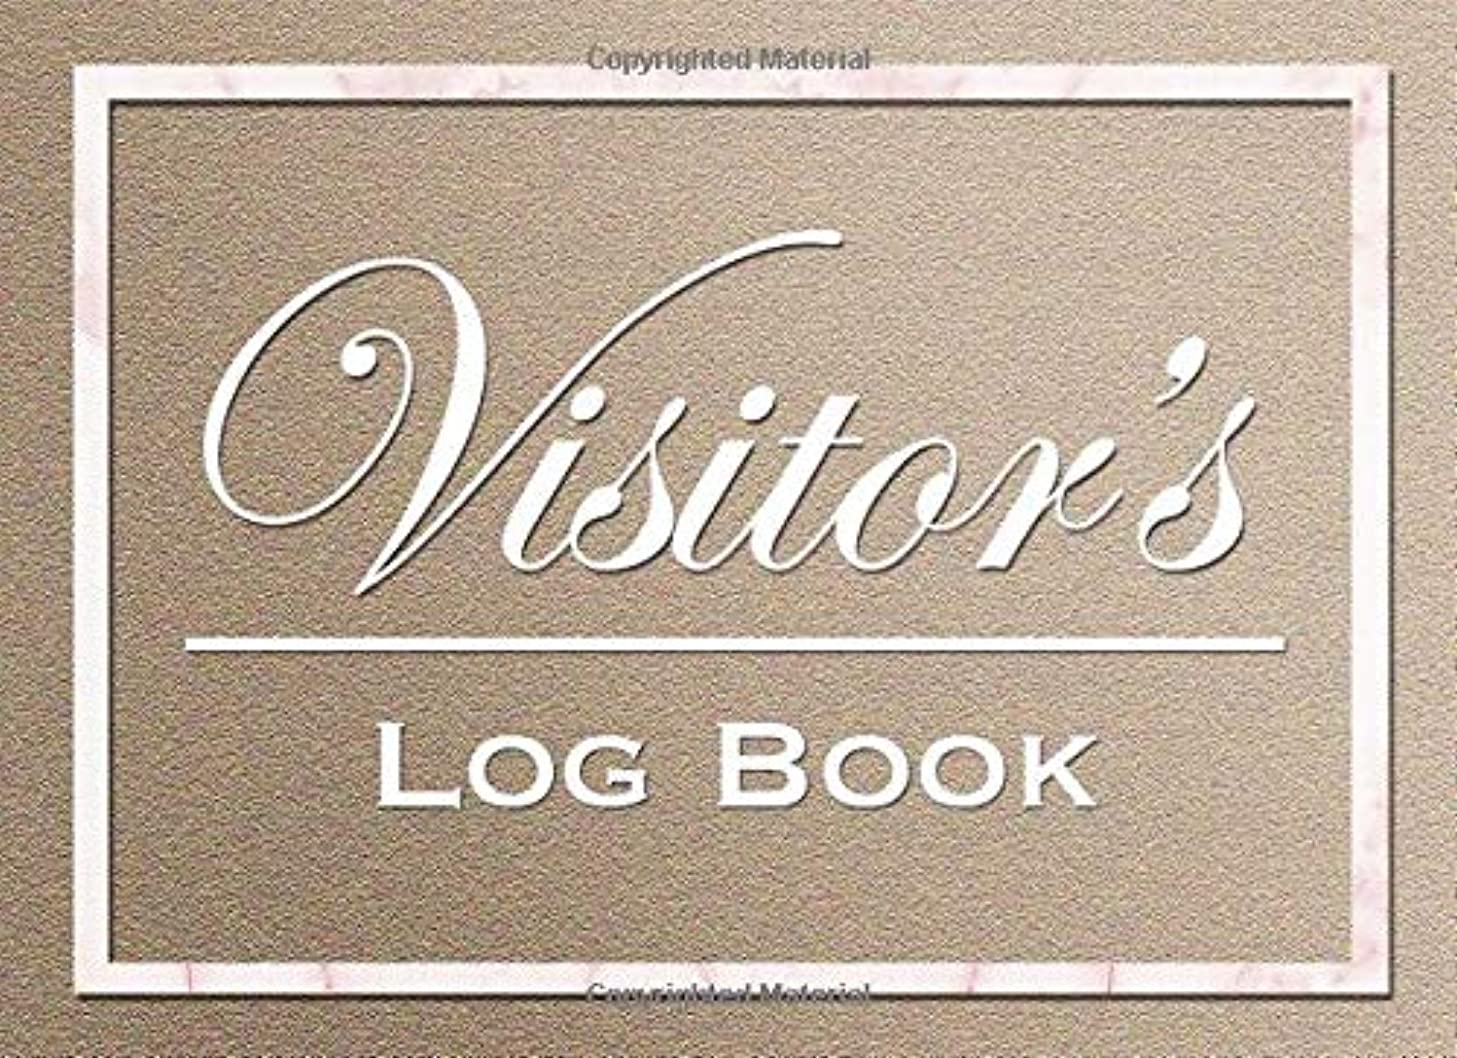 Visitor's Log Book: Elegant Visitor Record Sign-in Book for Business/Hotels/Guest Houses/Reception